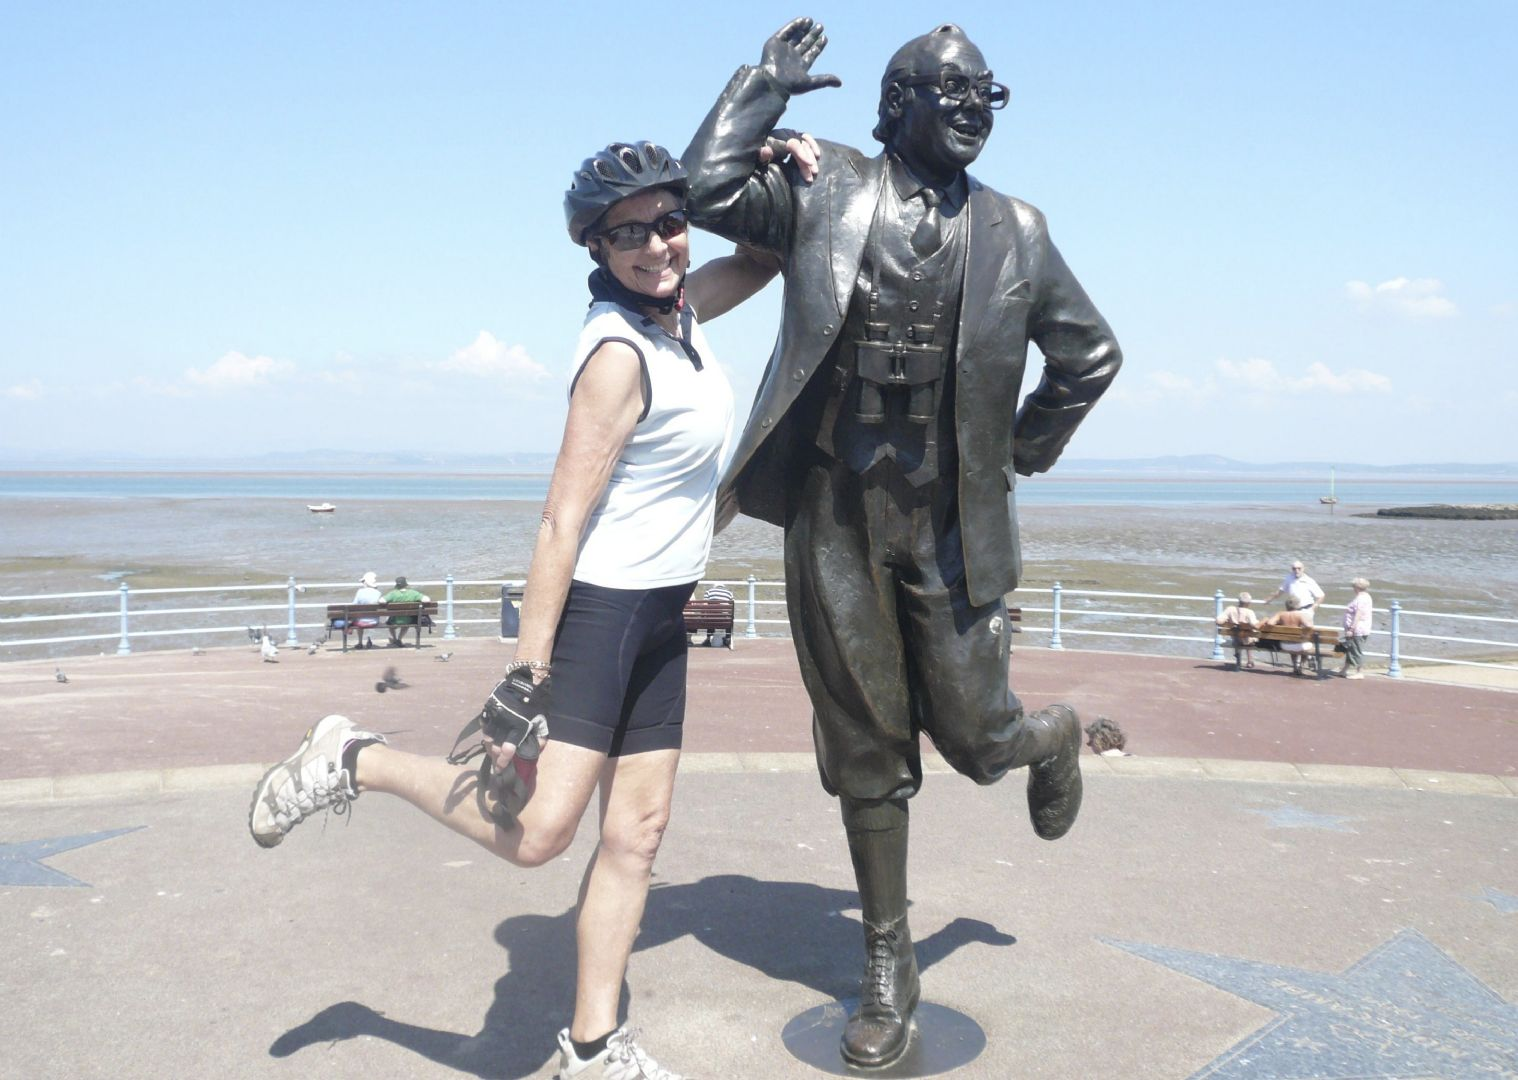 _Customer.67754.13493.jpg - UK - Way of the Roses - Supported Leisure Cycling Holiday - Leisure Cycling